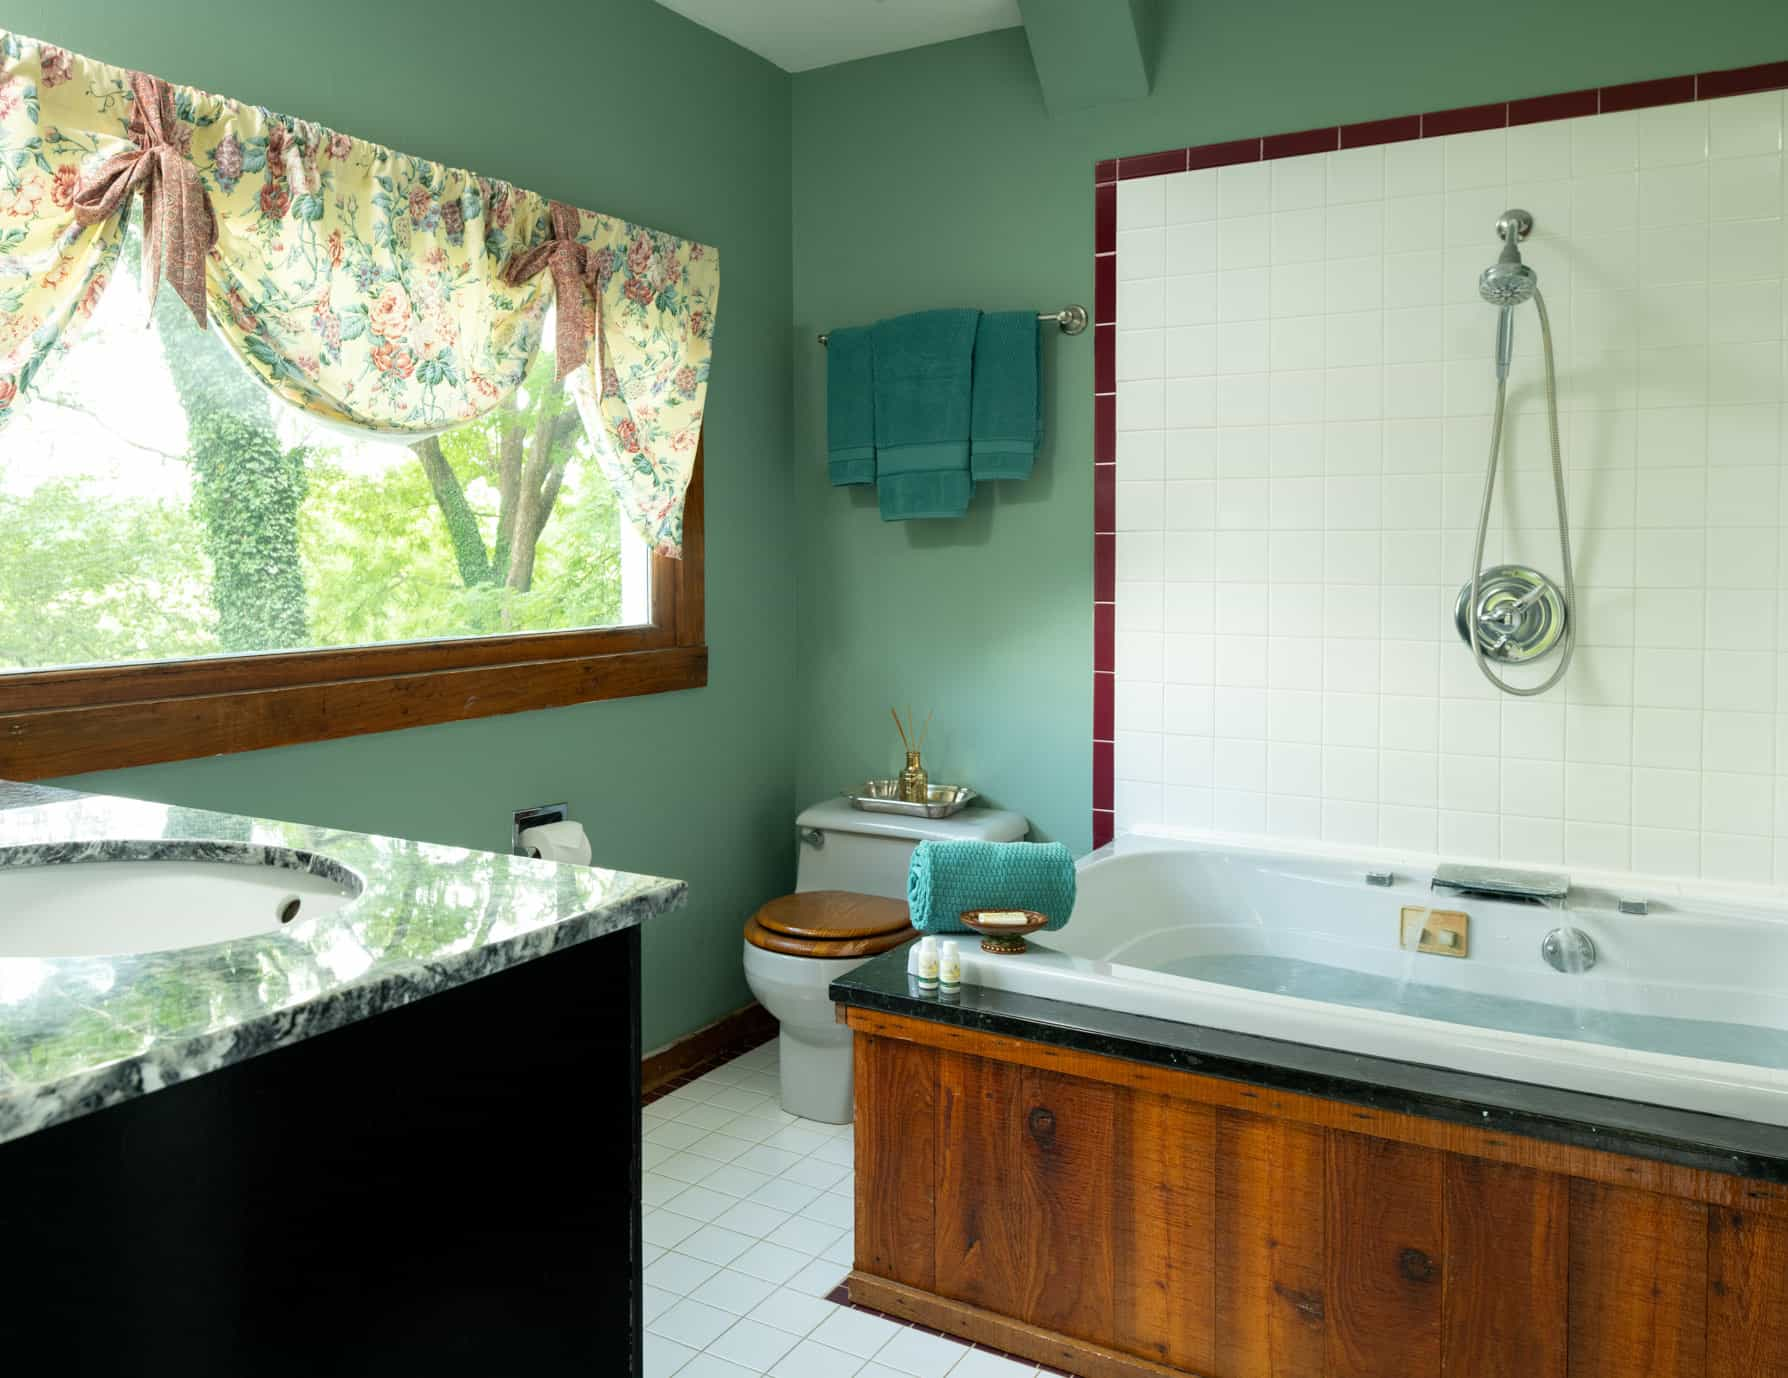 Bathroom with a large jetted tub and showerhead with a large window